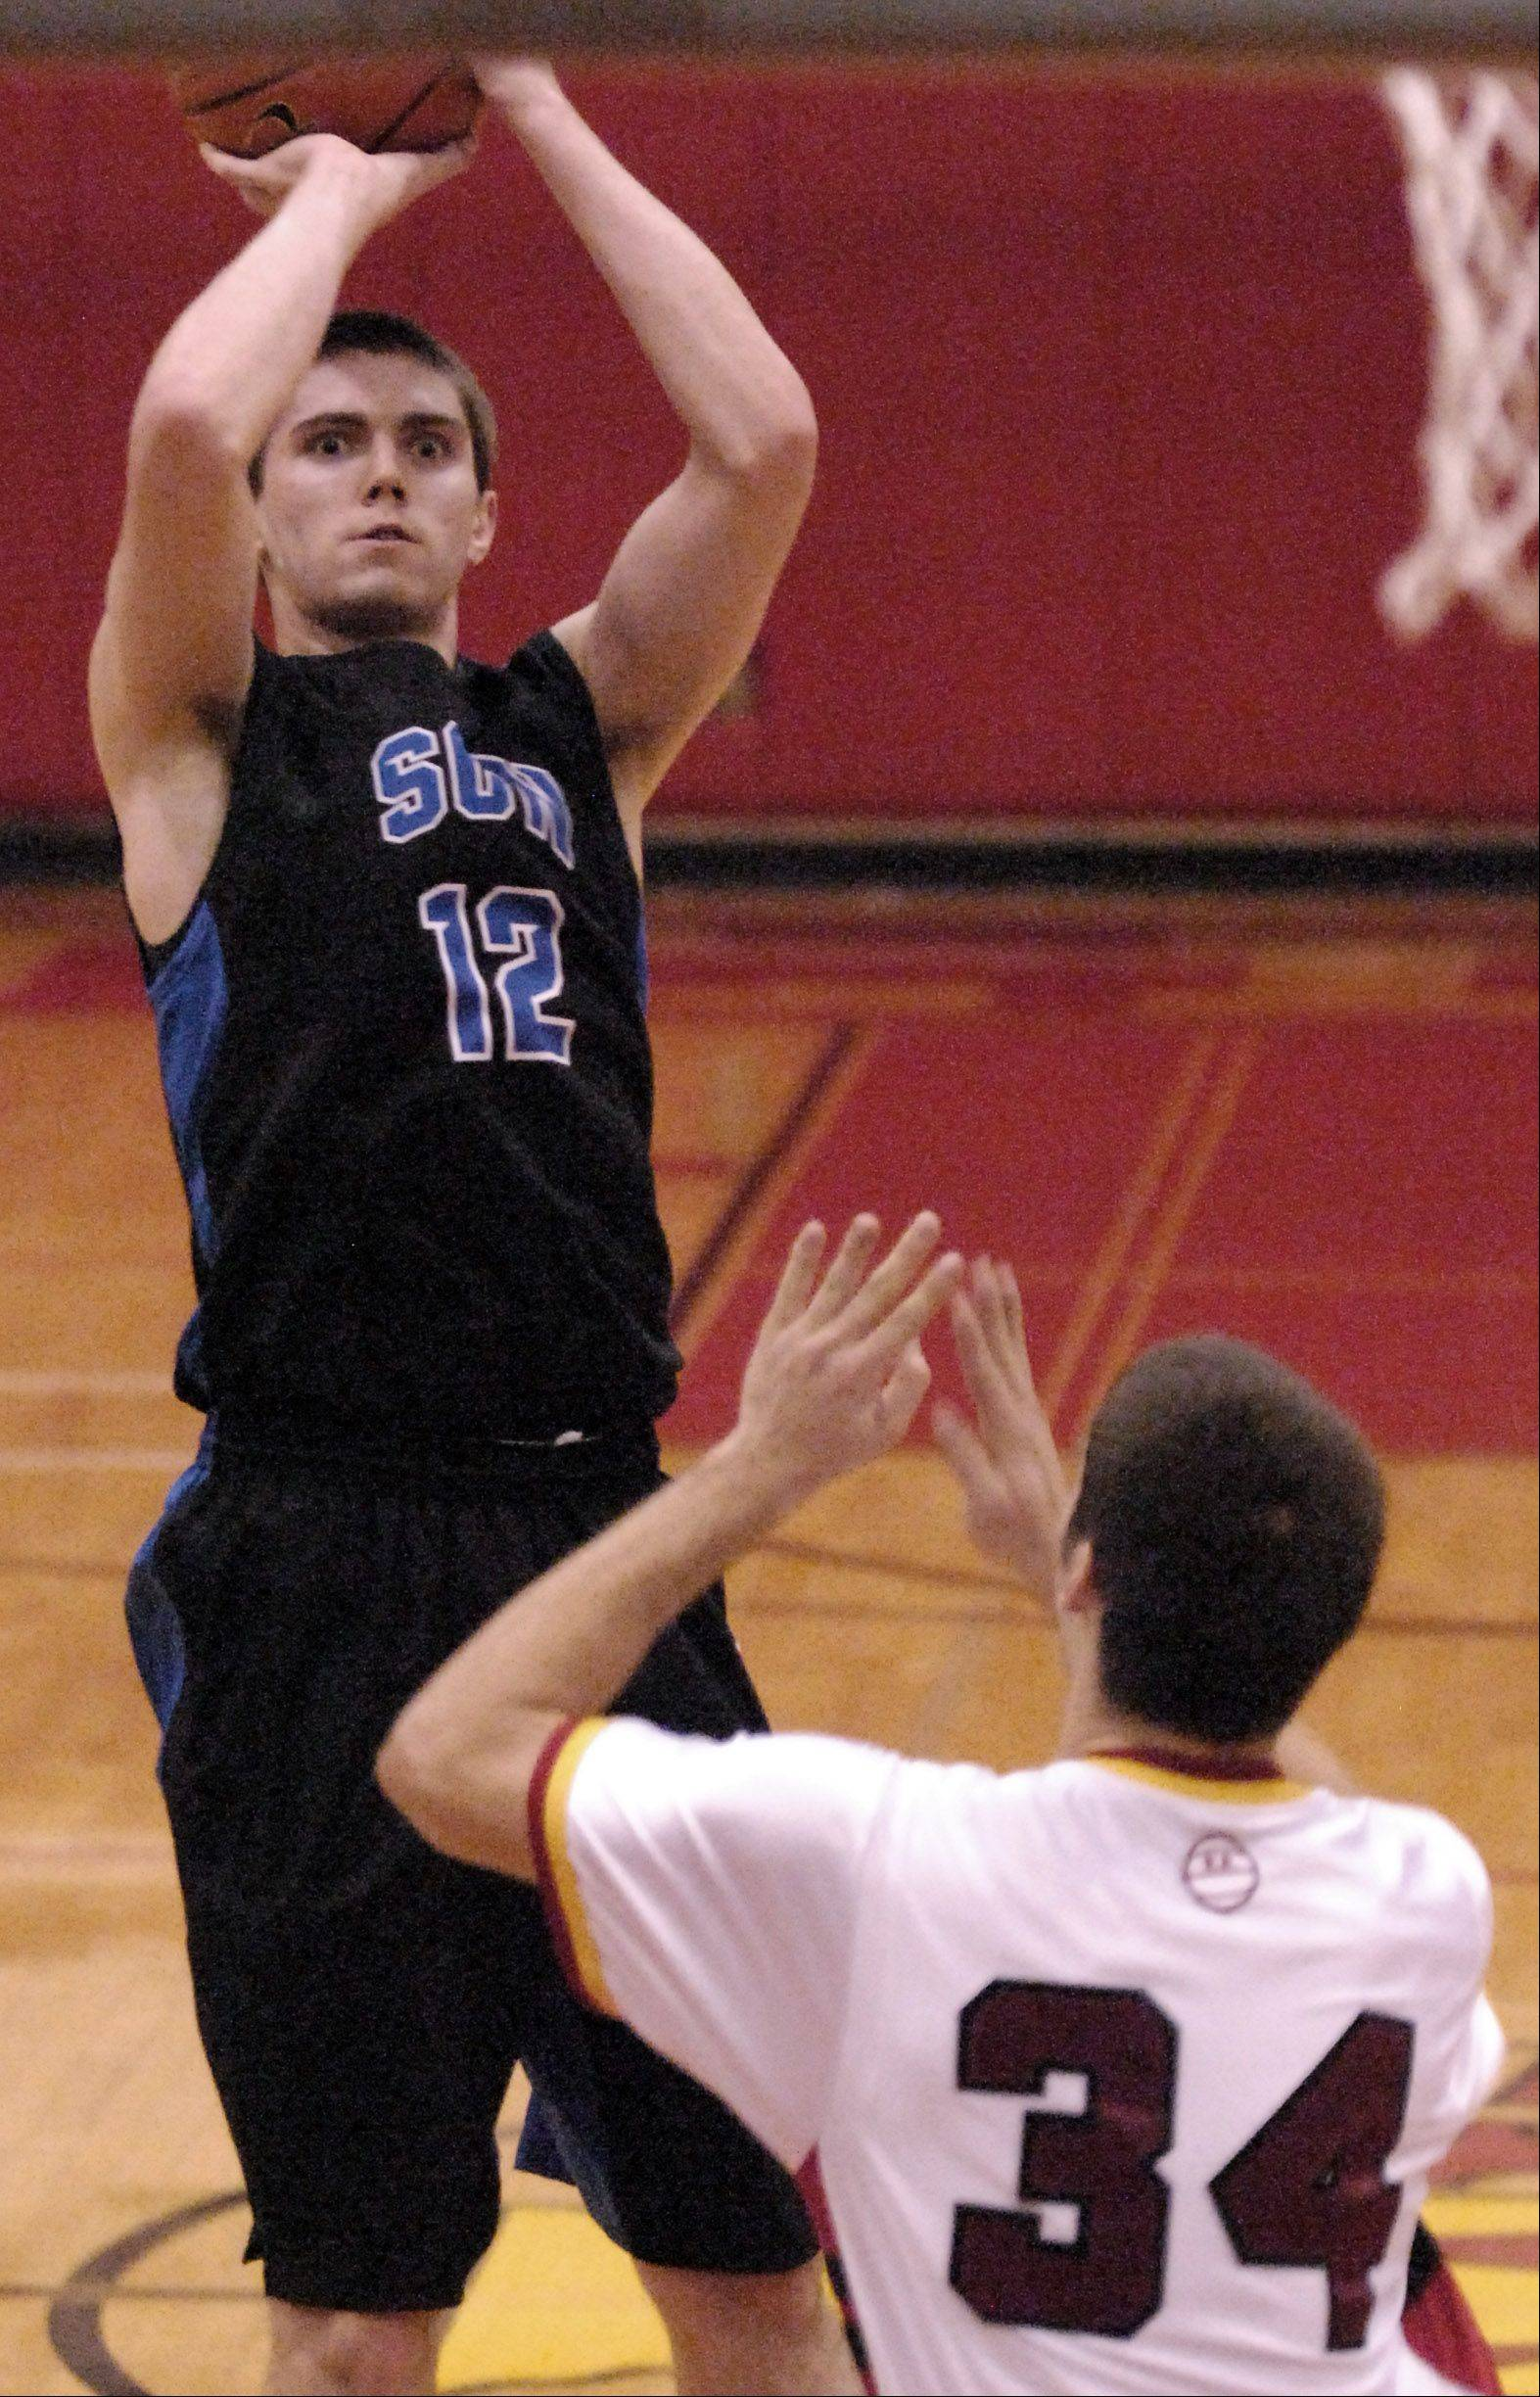 St. Charles North's Quinten Payne shoots and scores from the outside against Batavia.